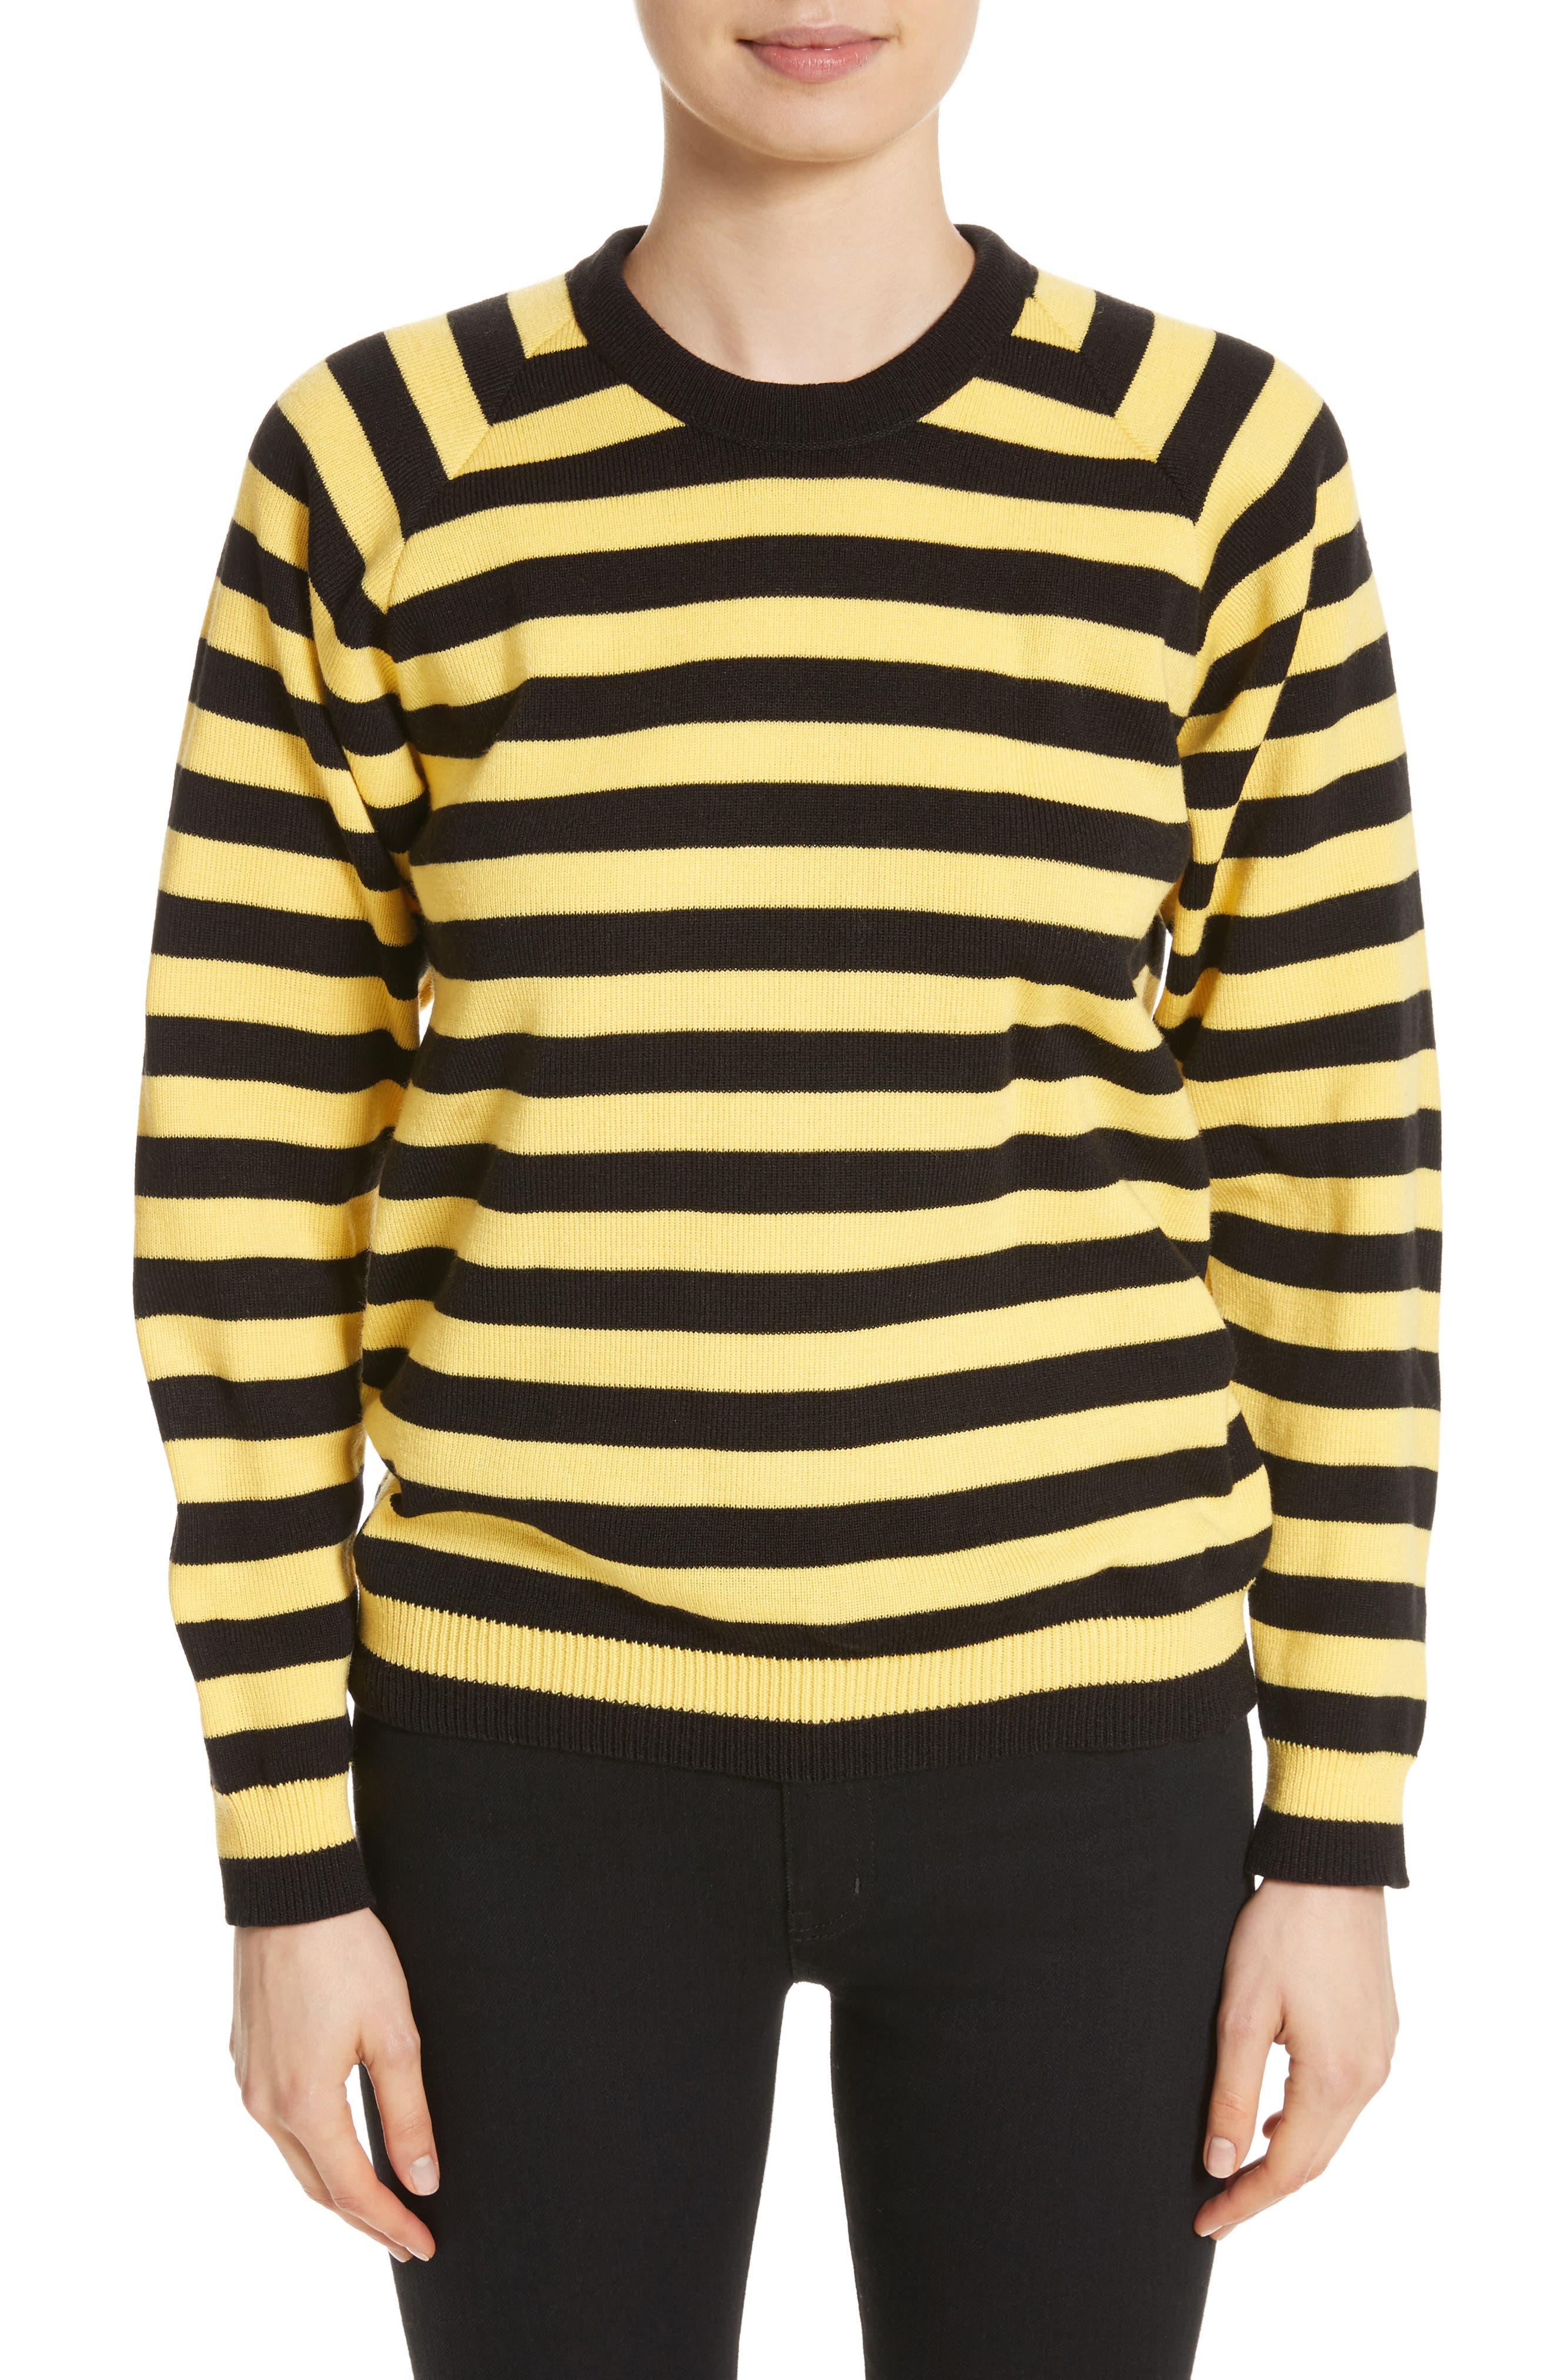 Bumblebee Stripe Sweater,                         Main,                         color, 750